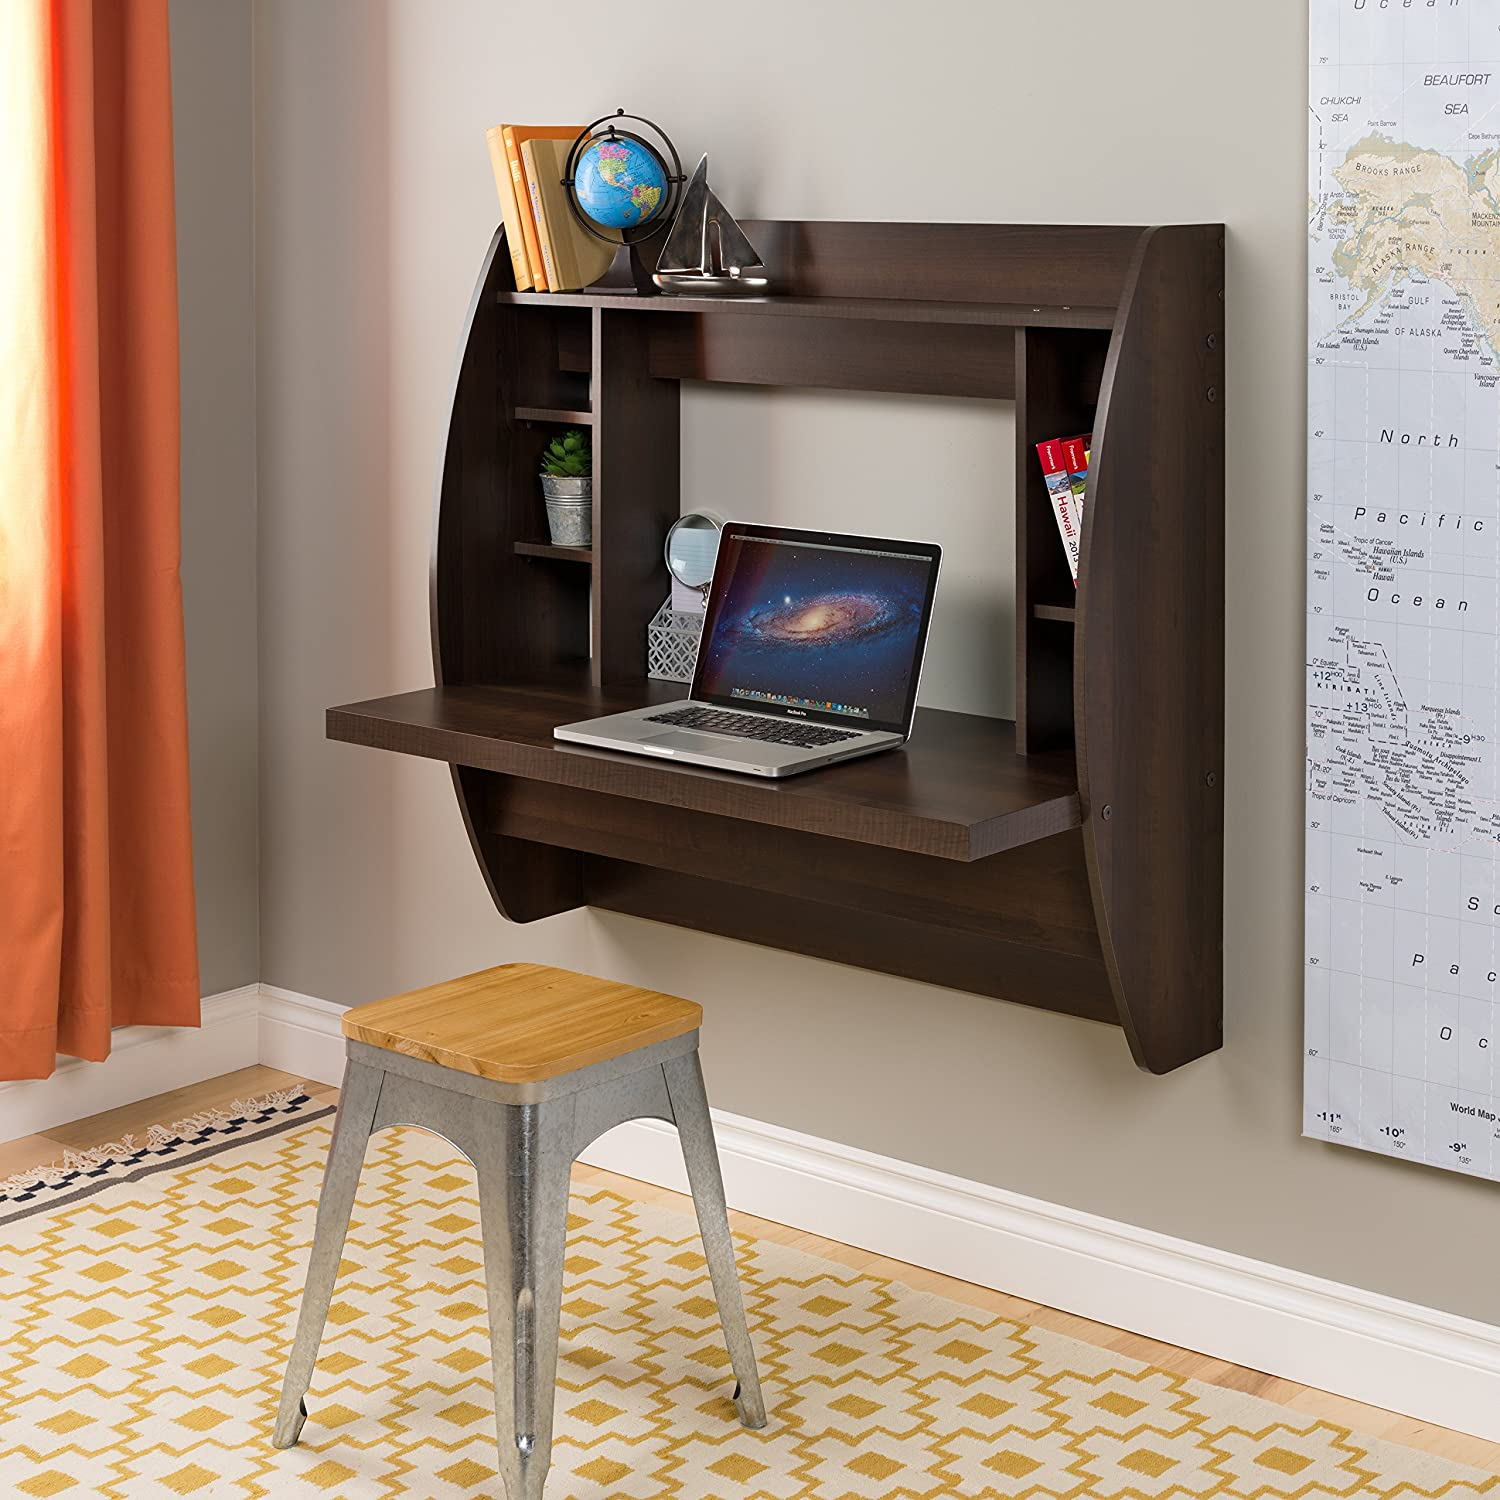 Amazon.com: Prepac Wall Mounted Floating Desk With Storage In Espresso:  Kitchen U0026 Dining